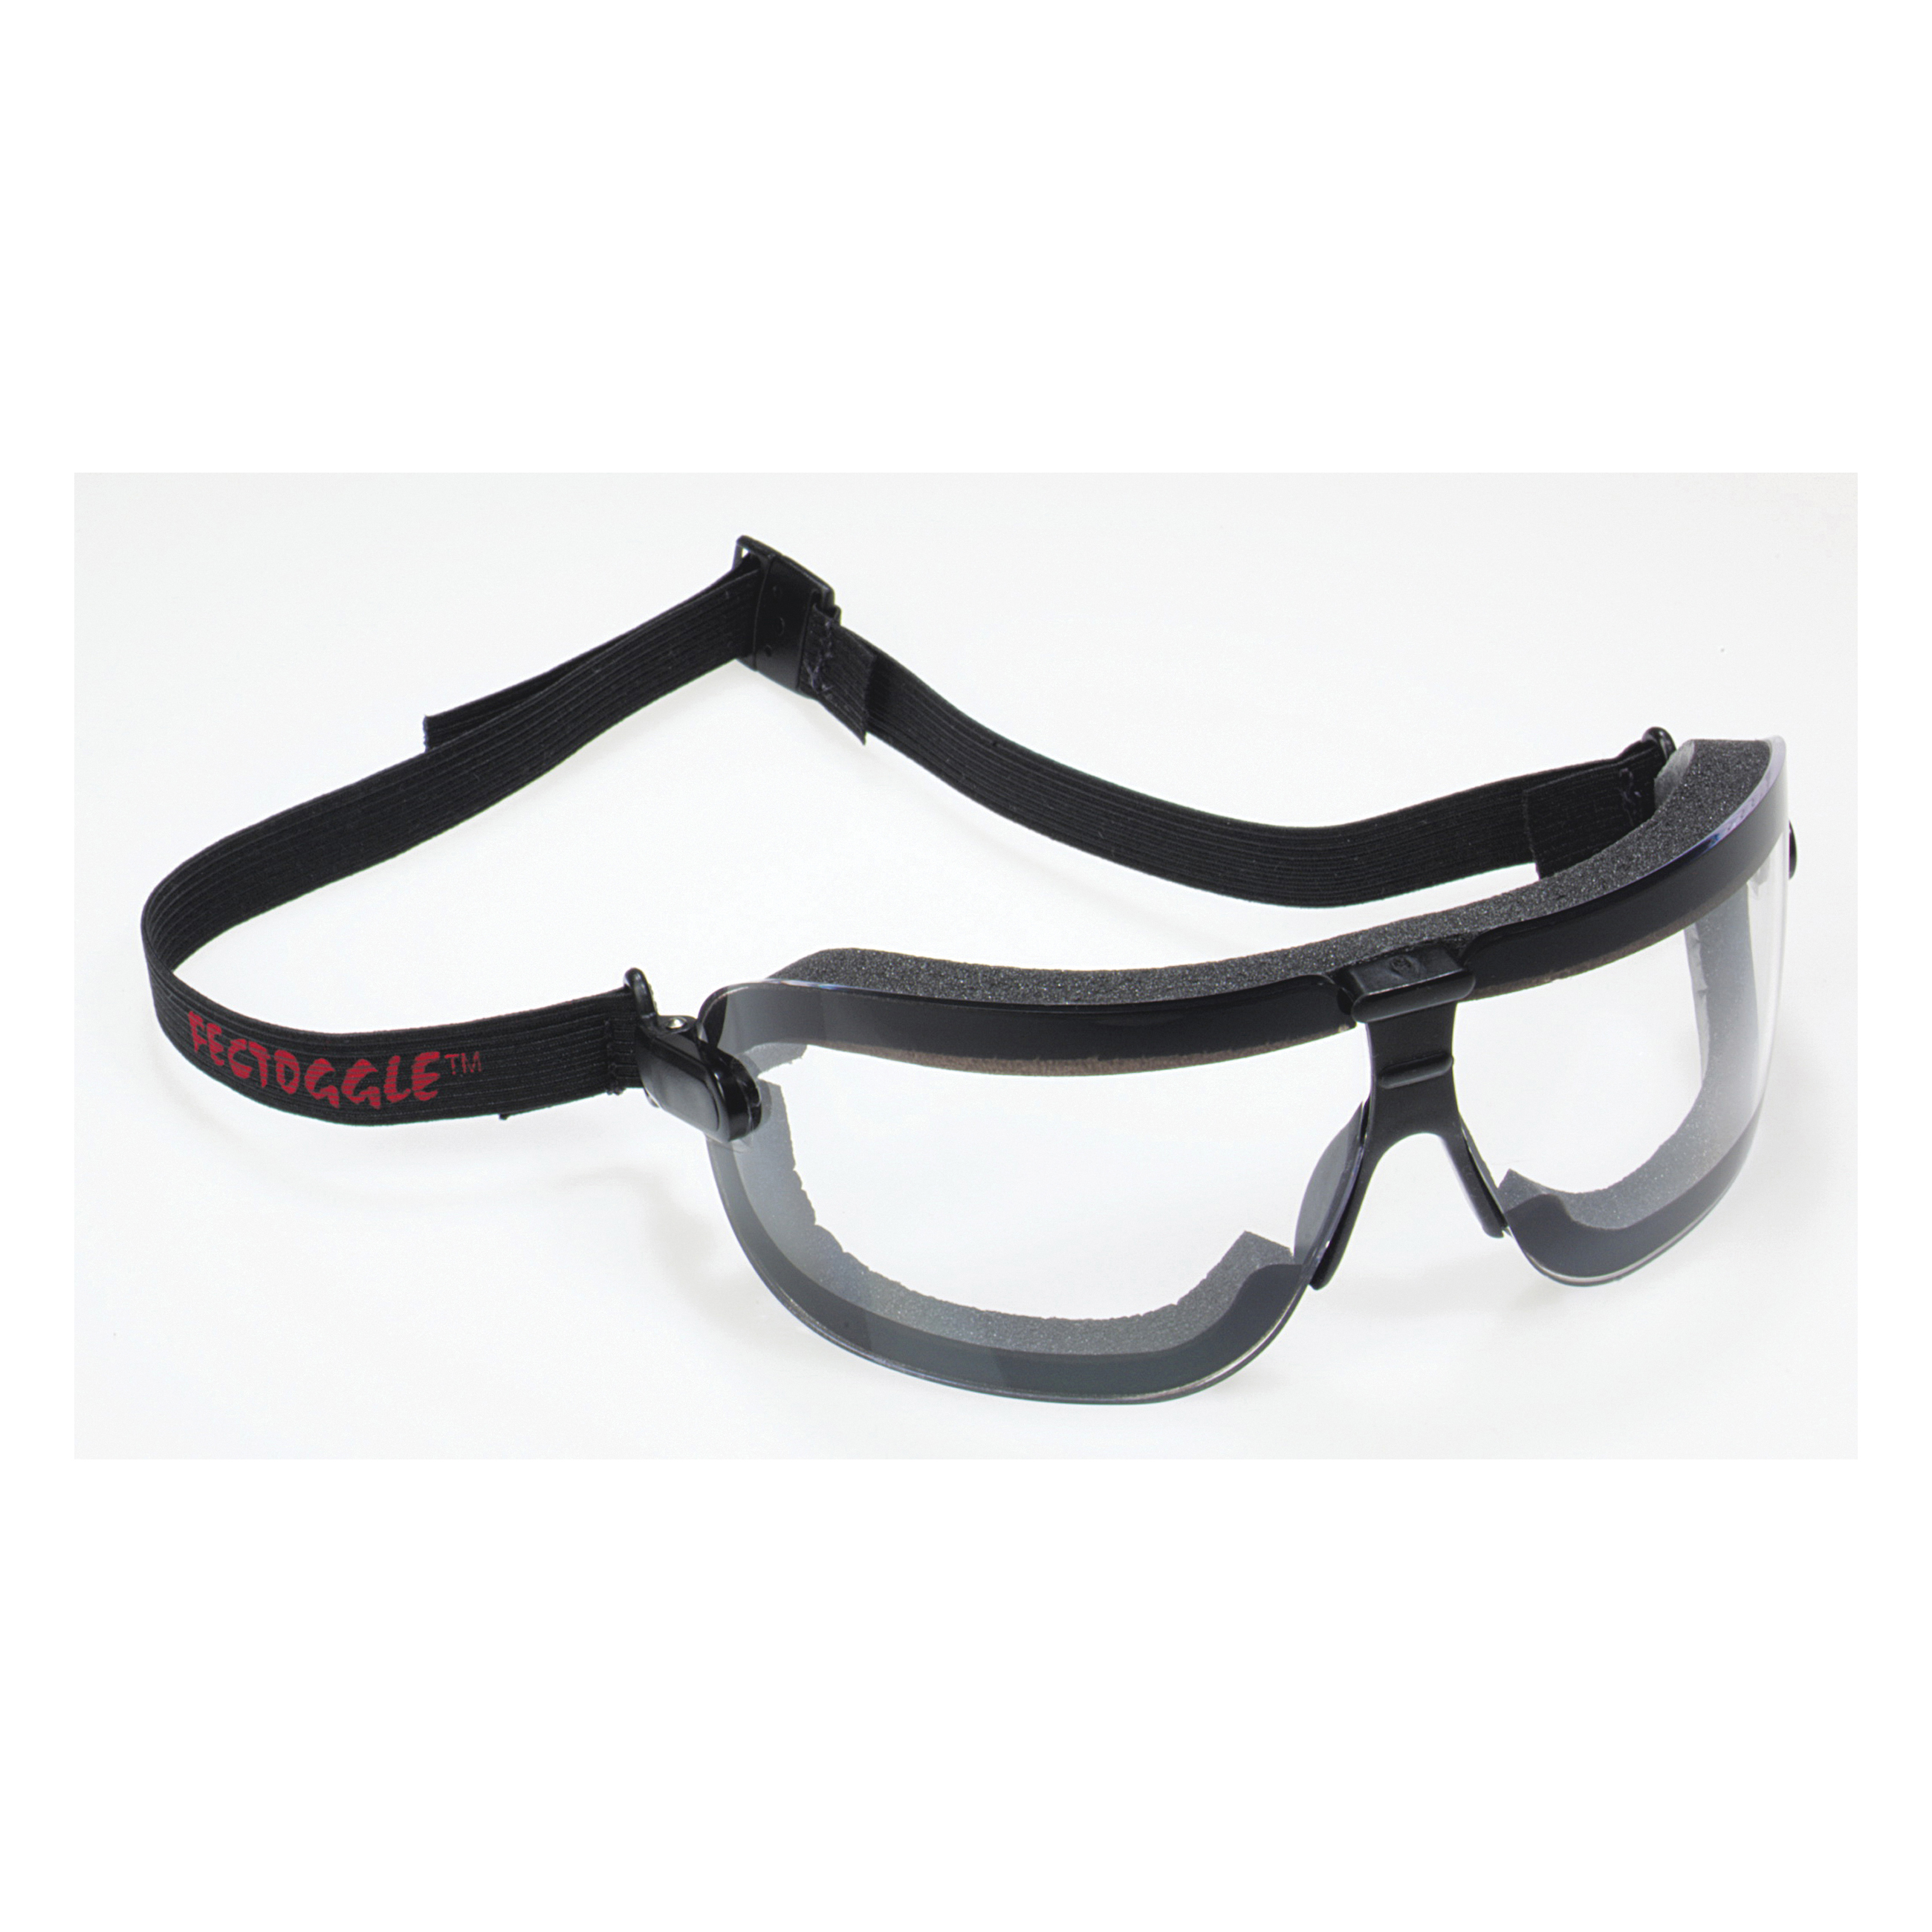 3M™ Fectoggles™ 078371-62324 Lightweight Safety Goggles, Anti-Fog/Anti-Scratch Clear Polycarbonate Lens, 99.9 % UV Protection, Elastic Strap, ANSI Z87.1-2015, CSA Z94.3